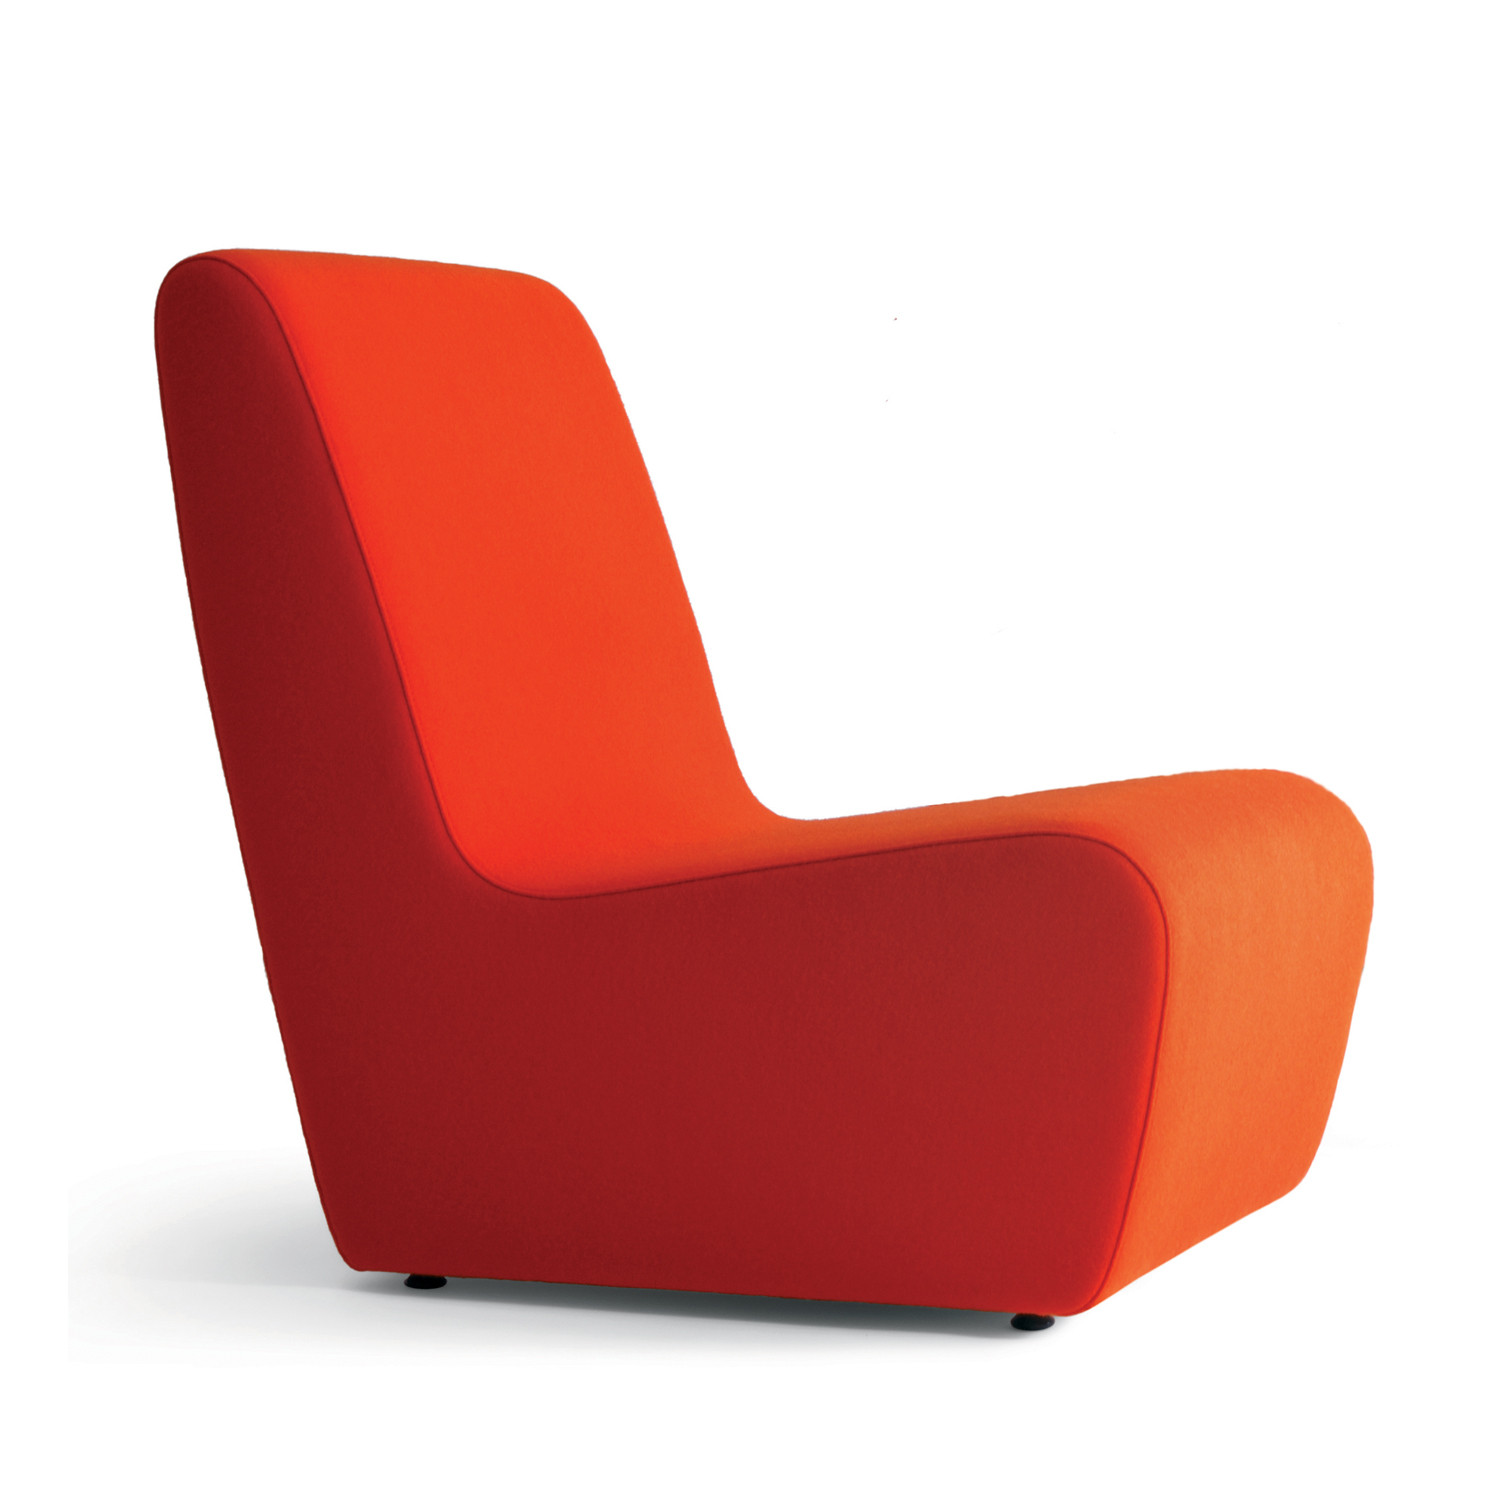 HM55a Lounge Chair